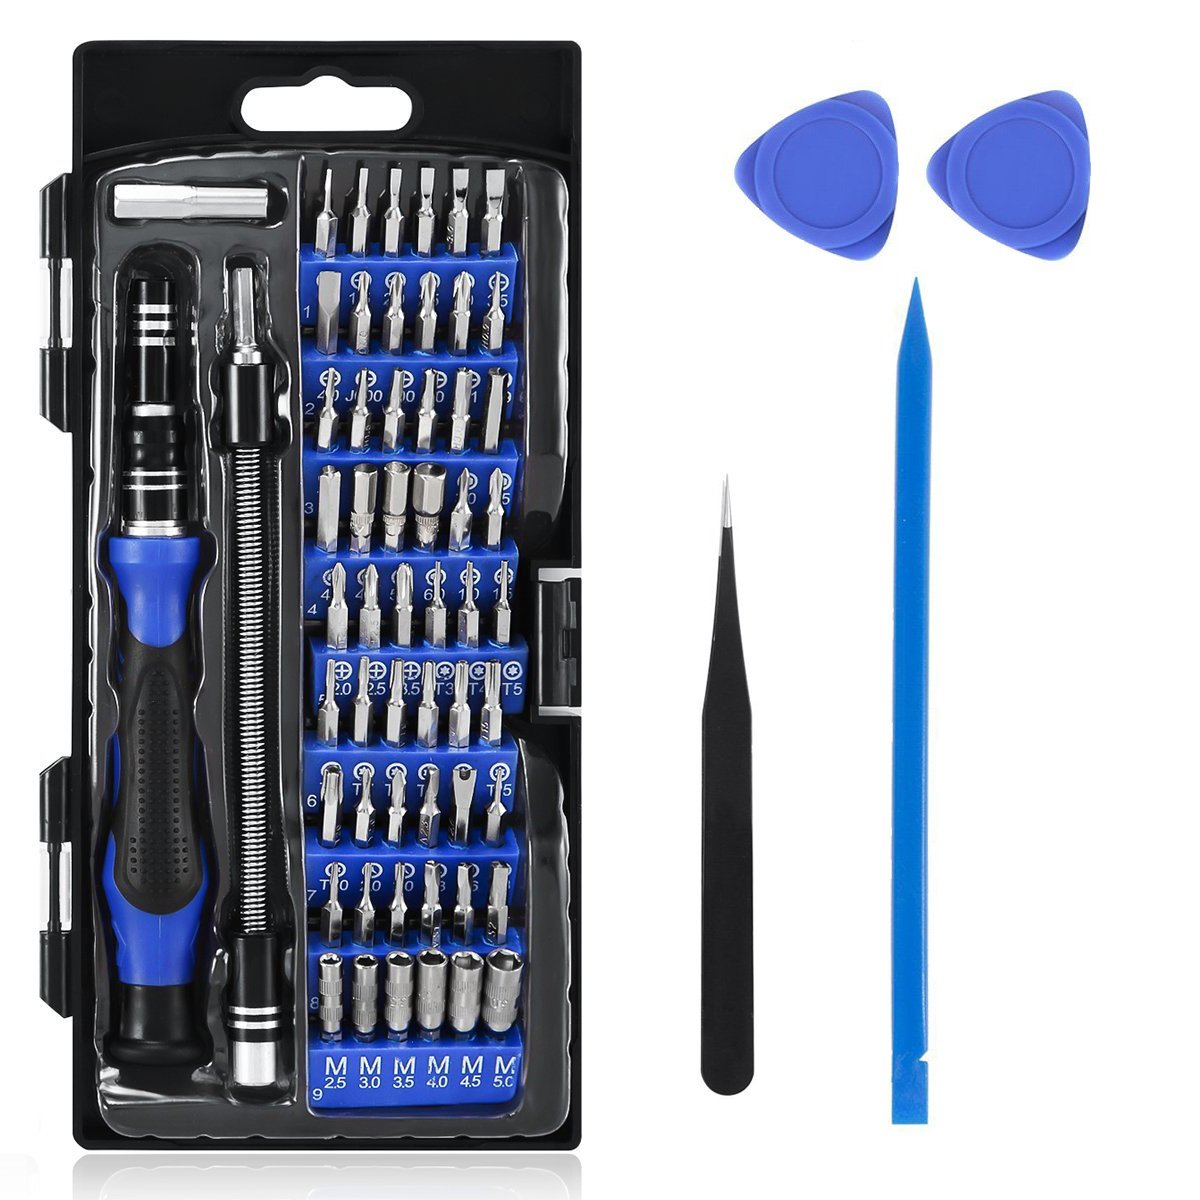 TraderPlus 64 in 1 Professional Screwdriver Set with 56 Magnetic Specialty Bit Set, Repair Tool Kit, Flexible Shaft, for iPhone, Xbox, PlayStation, Tablet, PC, Electronics (Blue)